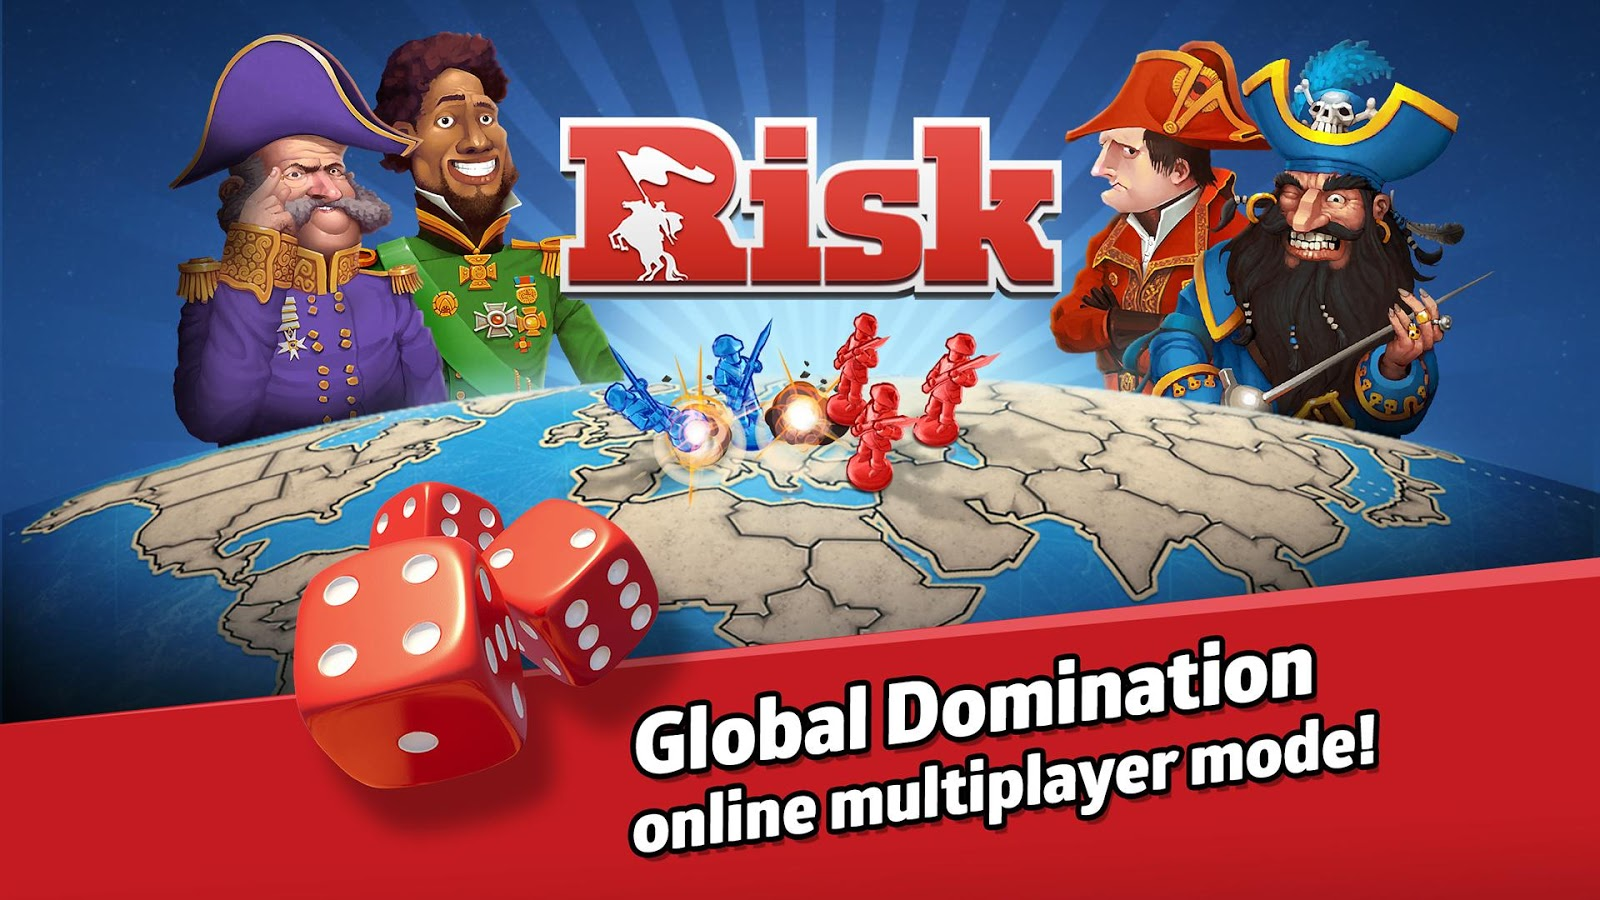 Thumbs risk global domination rules milf, seems